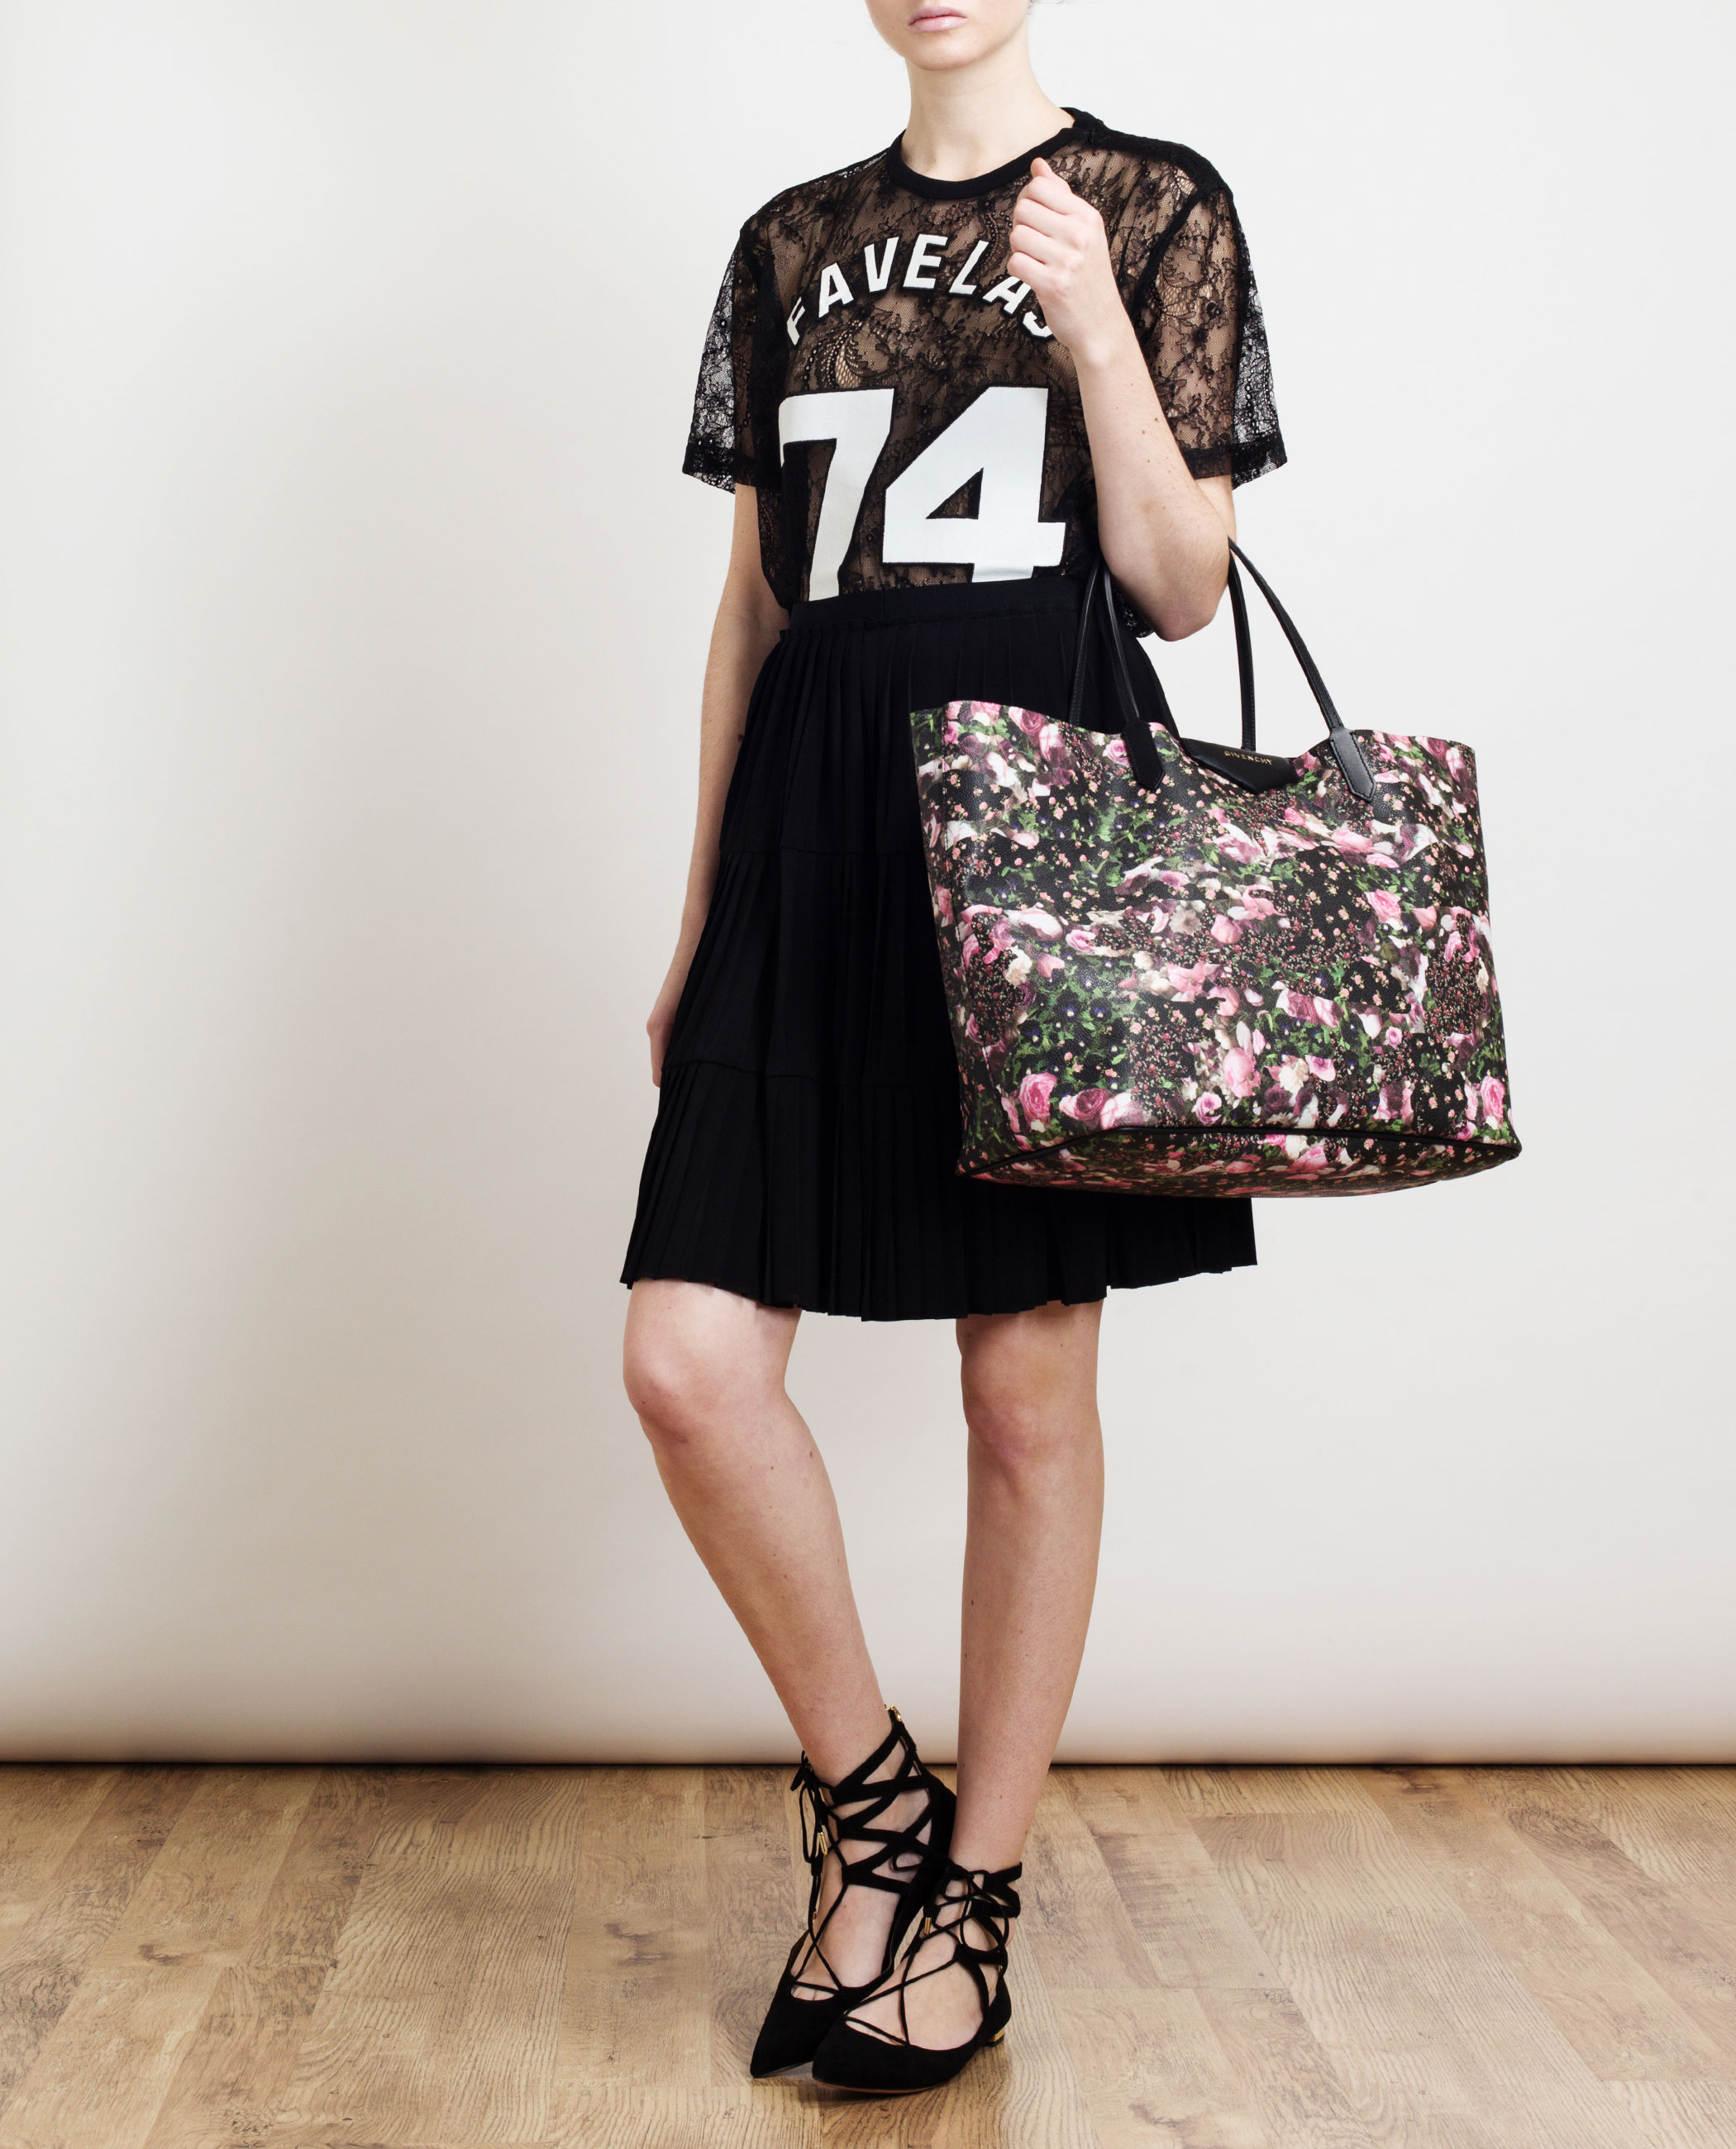 5449bc4e2a Givenchy Antigona Abstract Floral Leather Tote Bag - Lyst